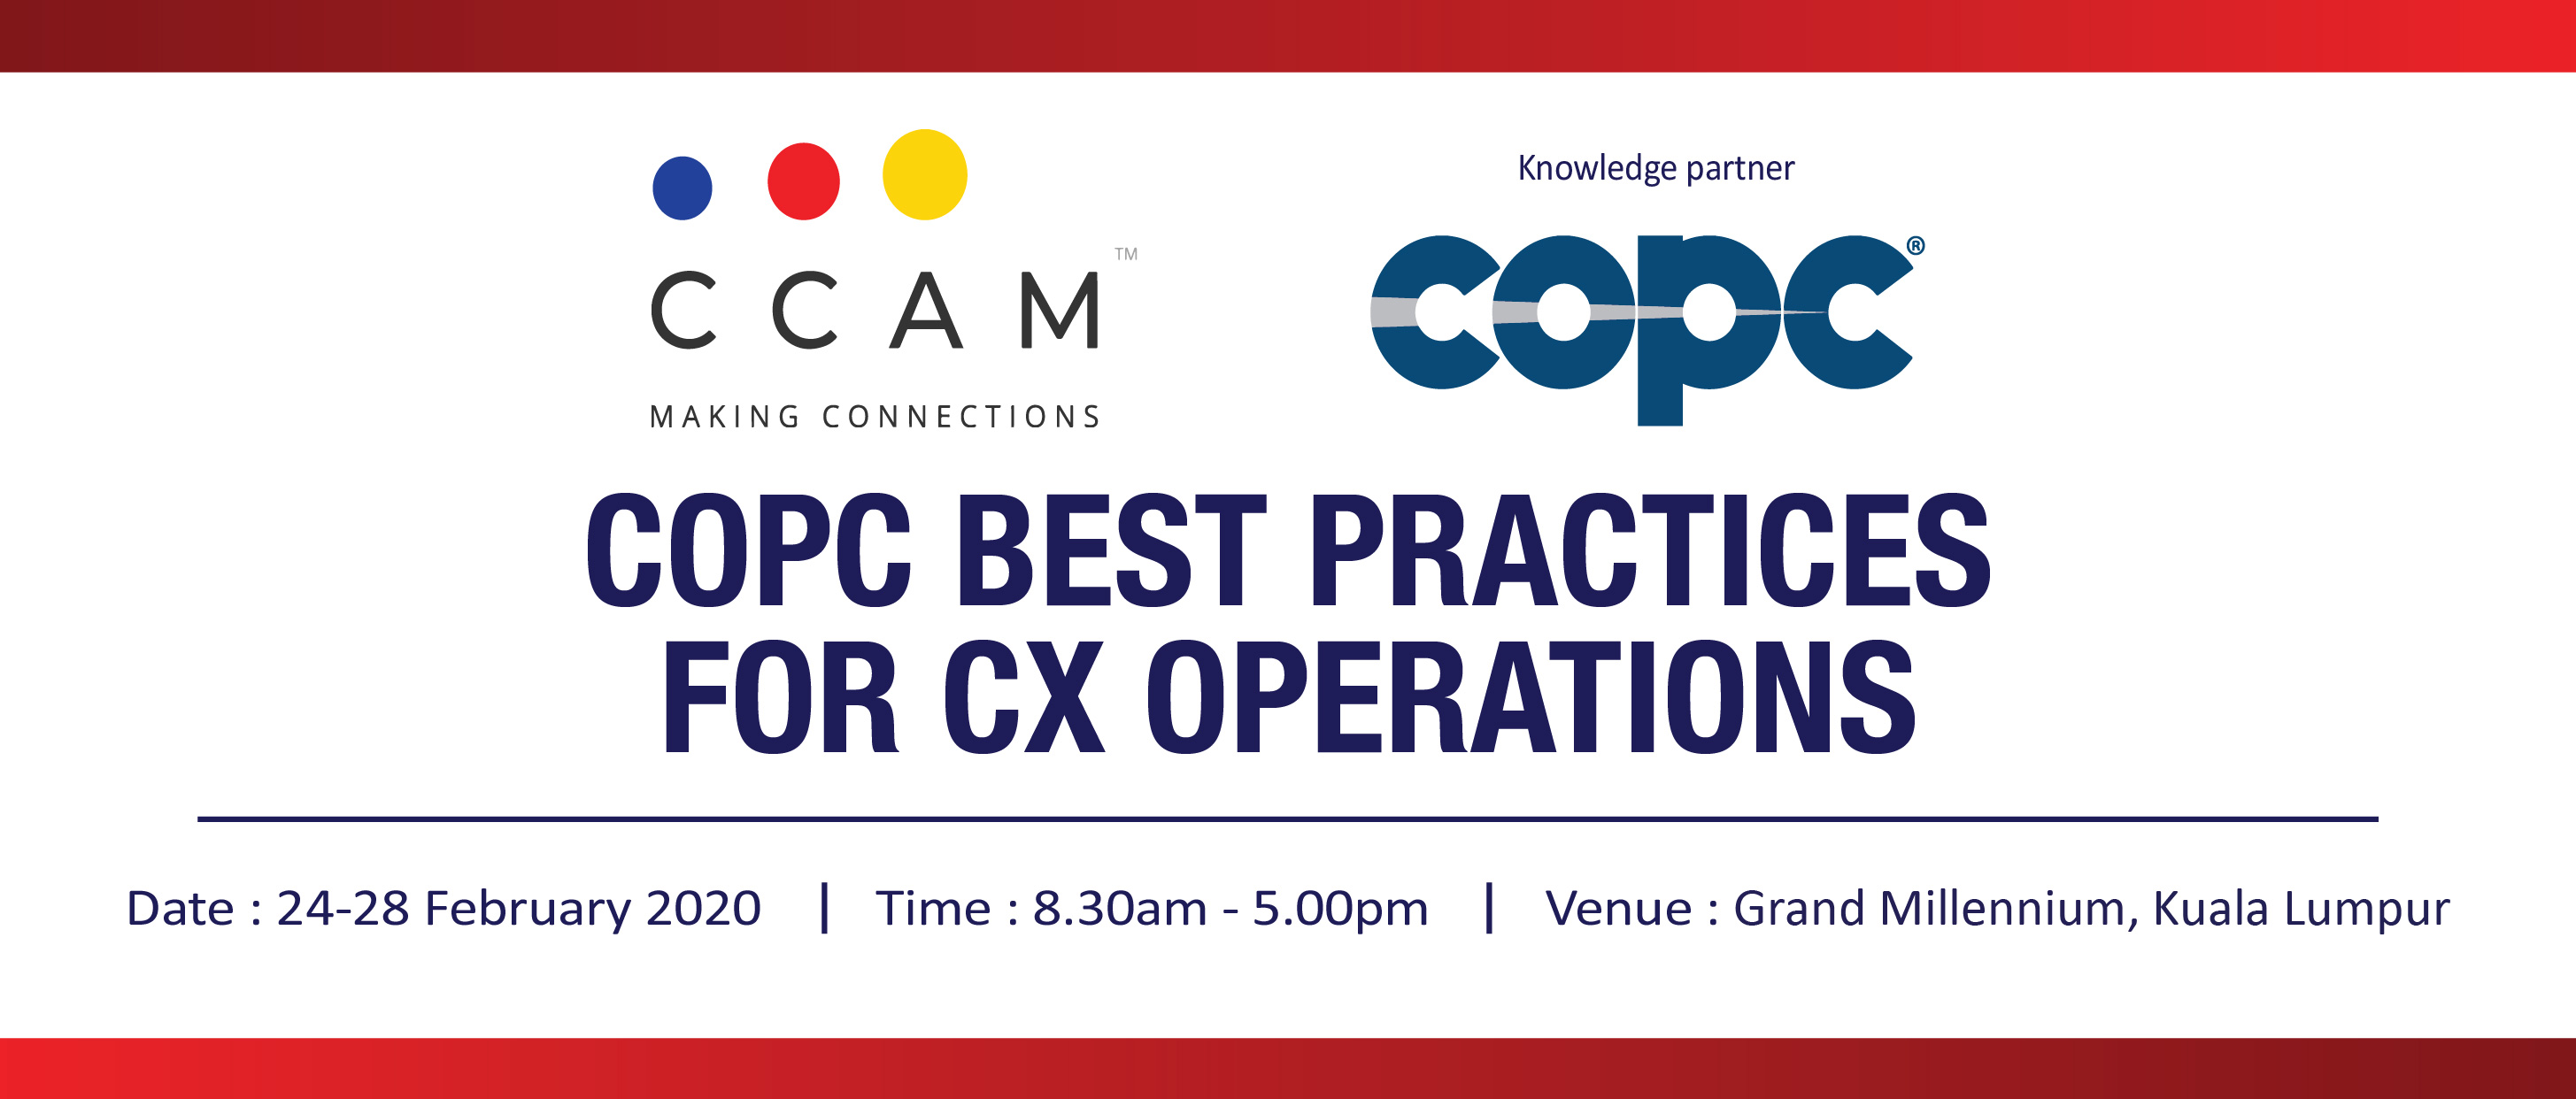 COPC Best Practices For CX Operations